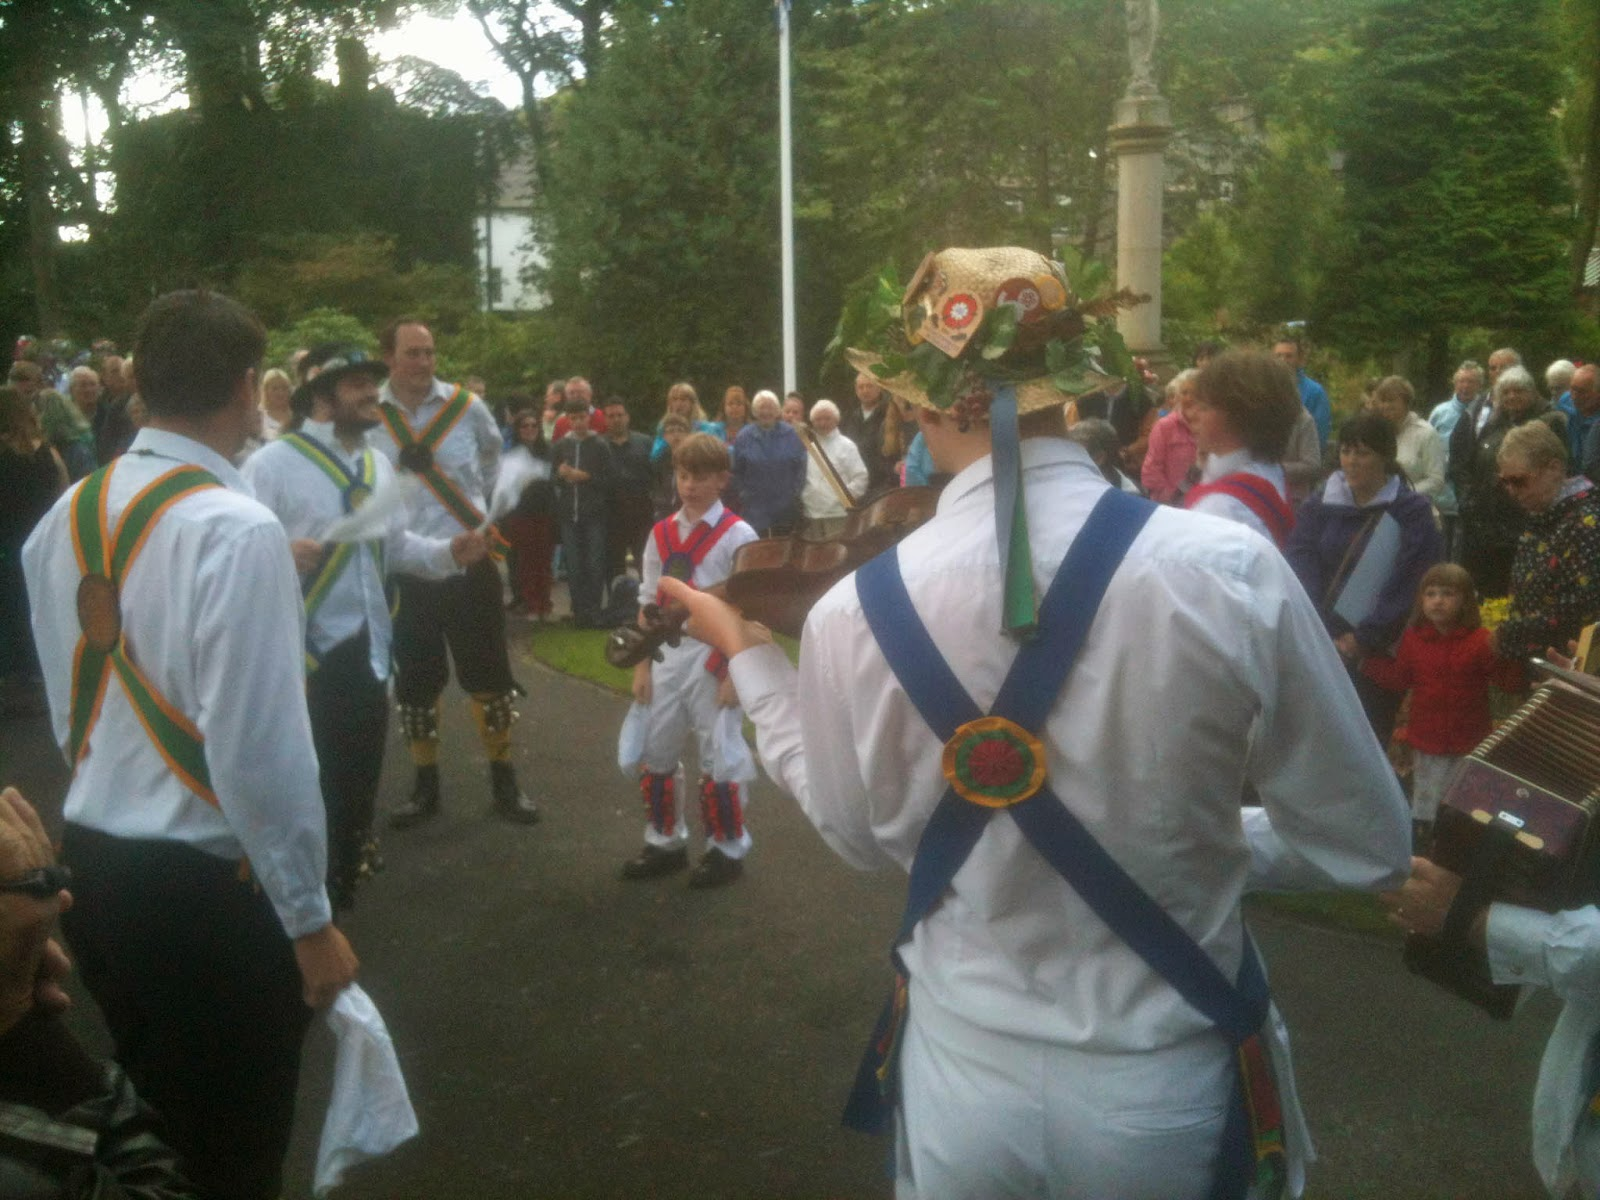 Folklore in the UK